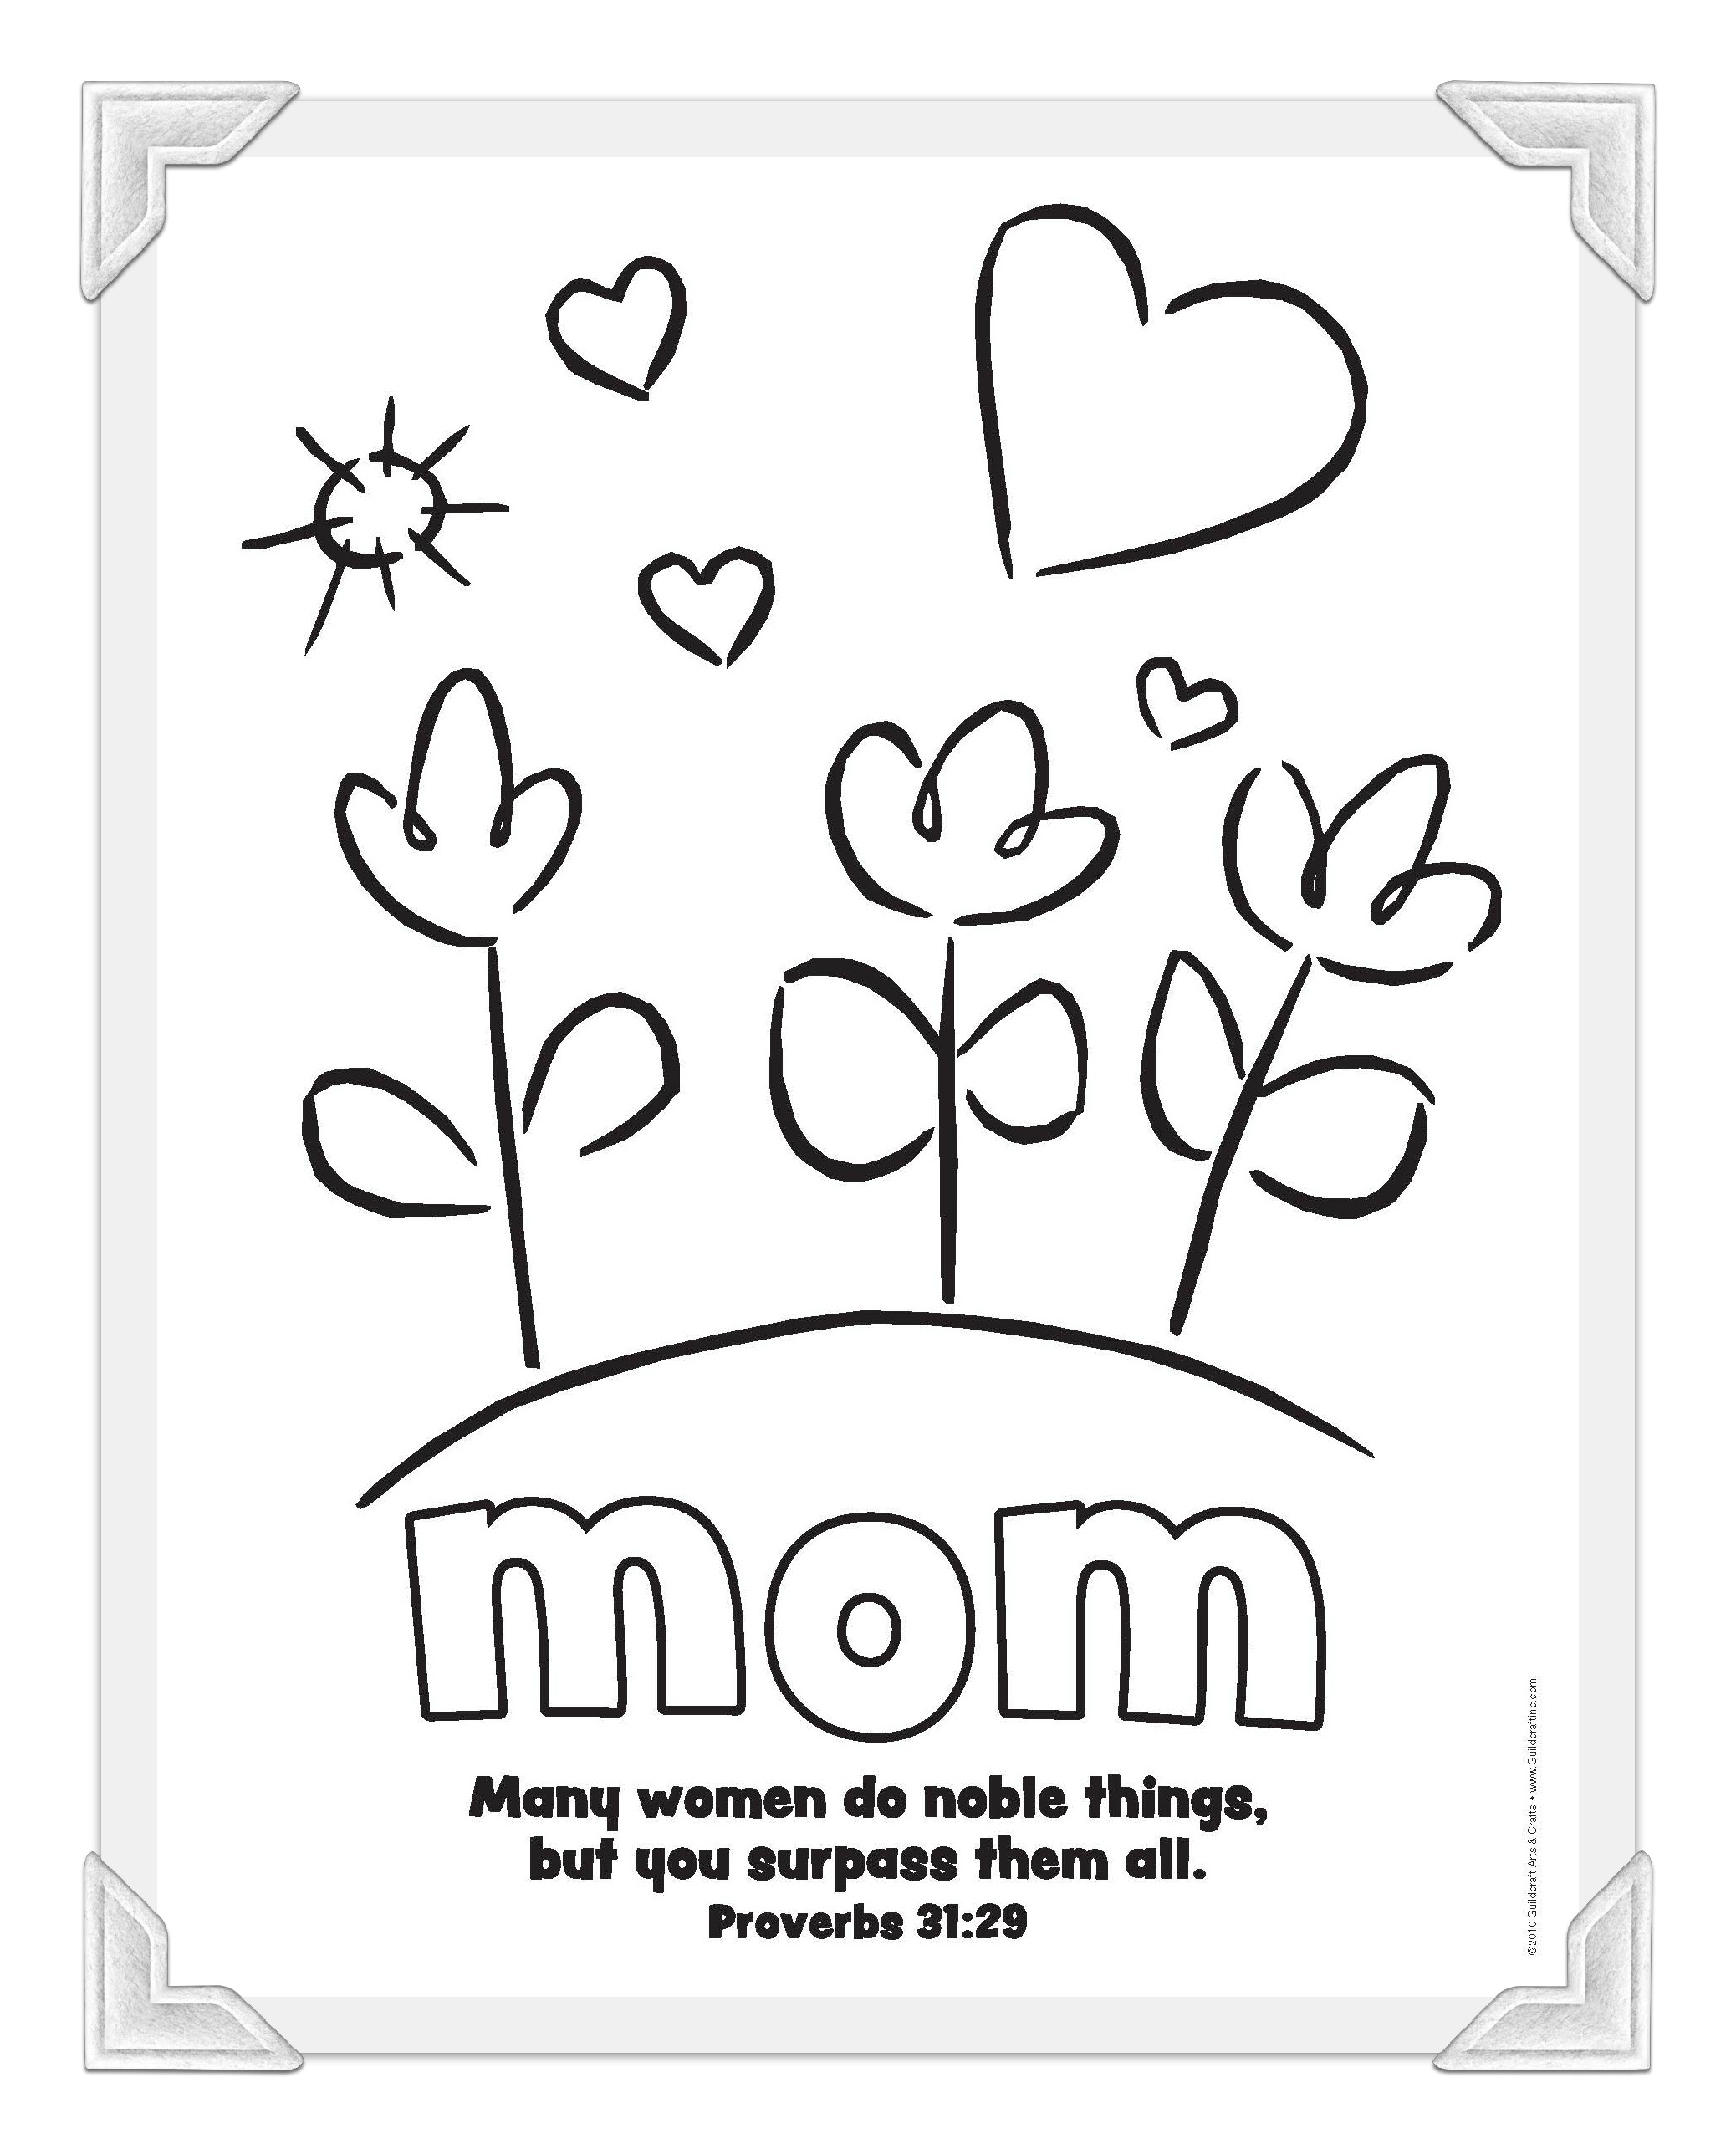 Coloring sheets for mothers day - Mothers Day Coloring Sheets